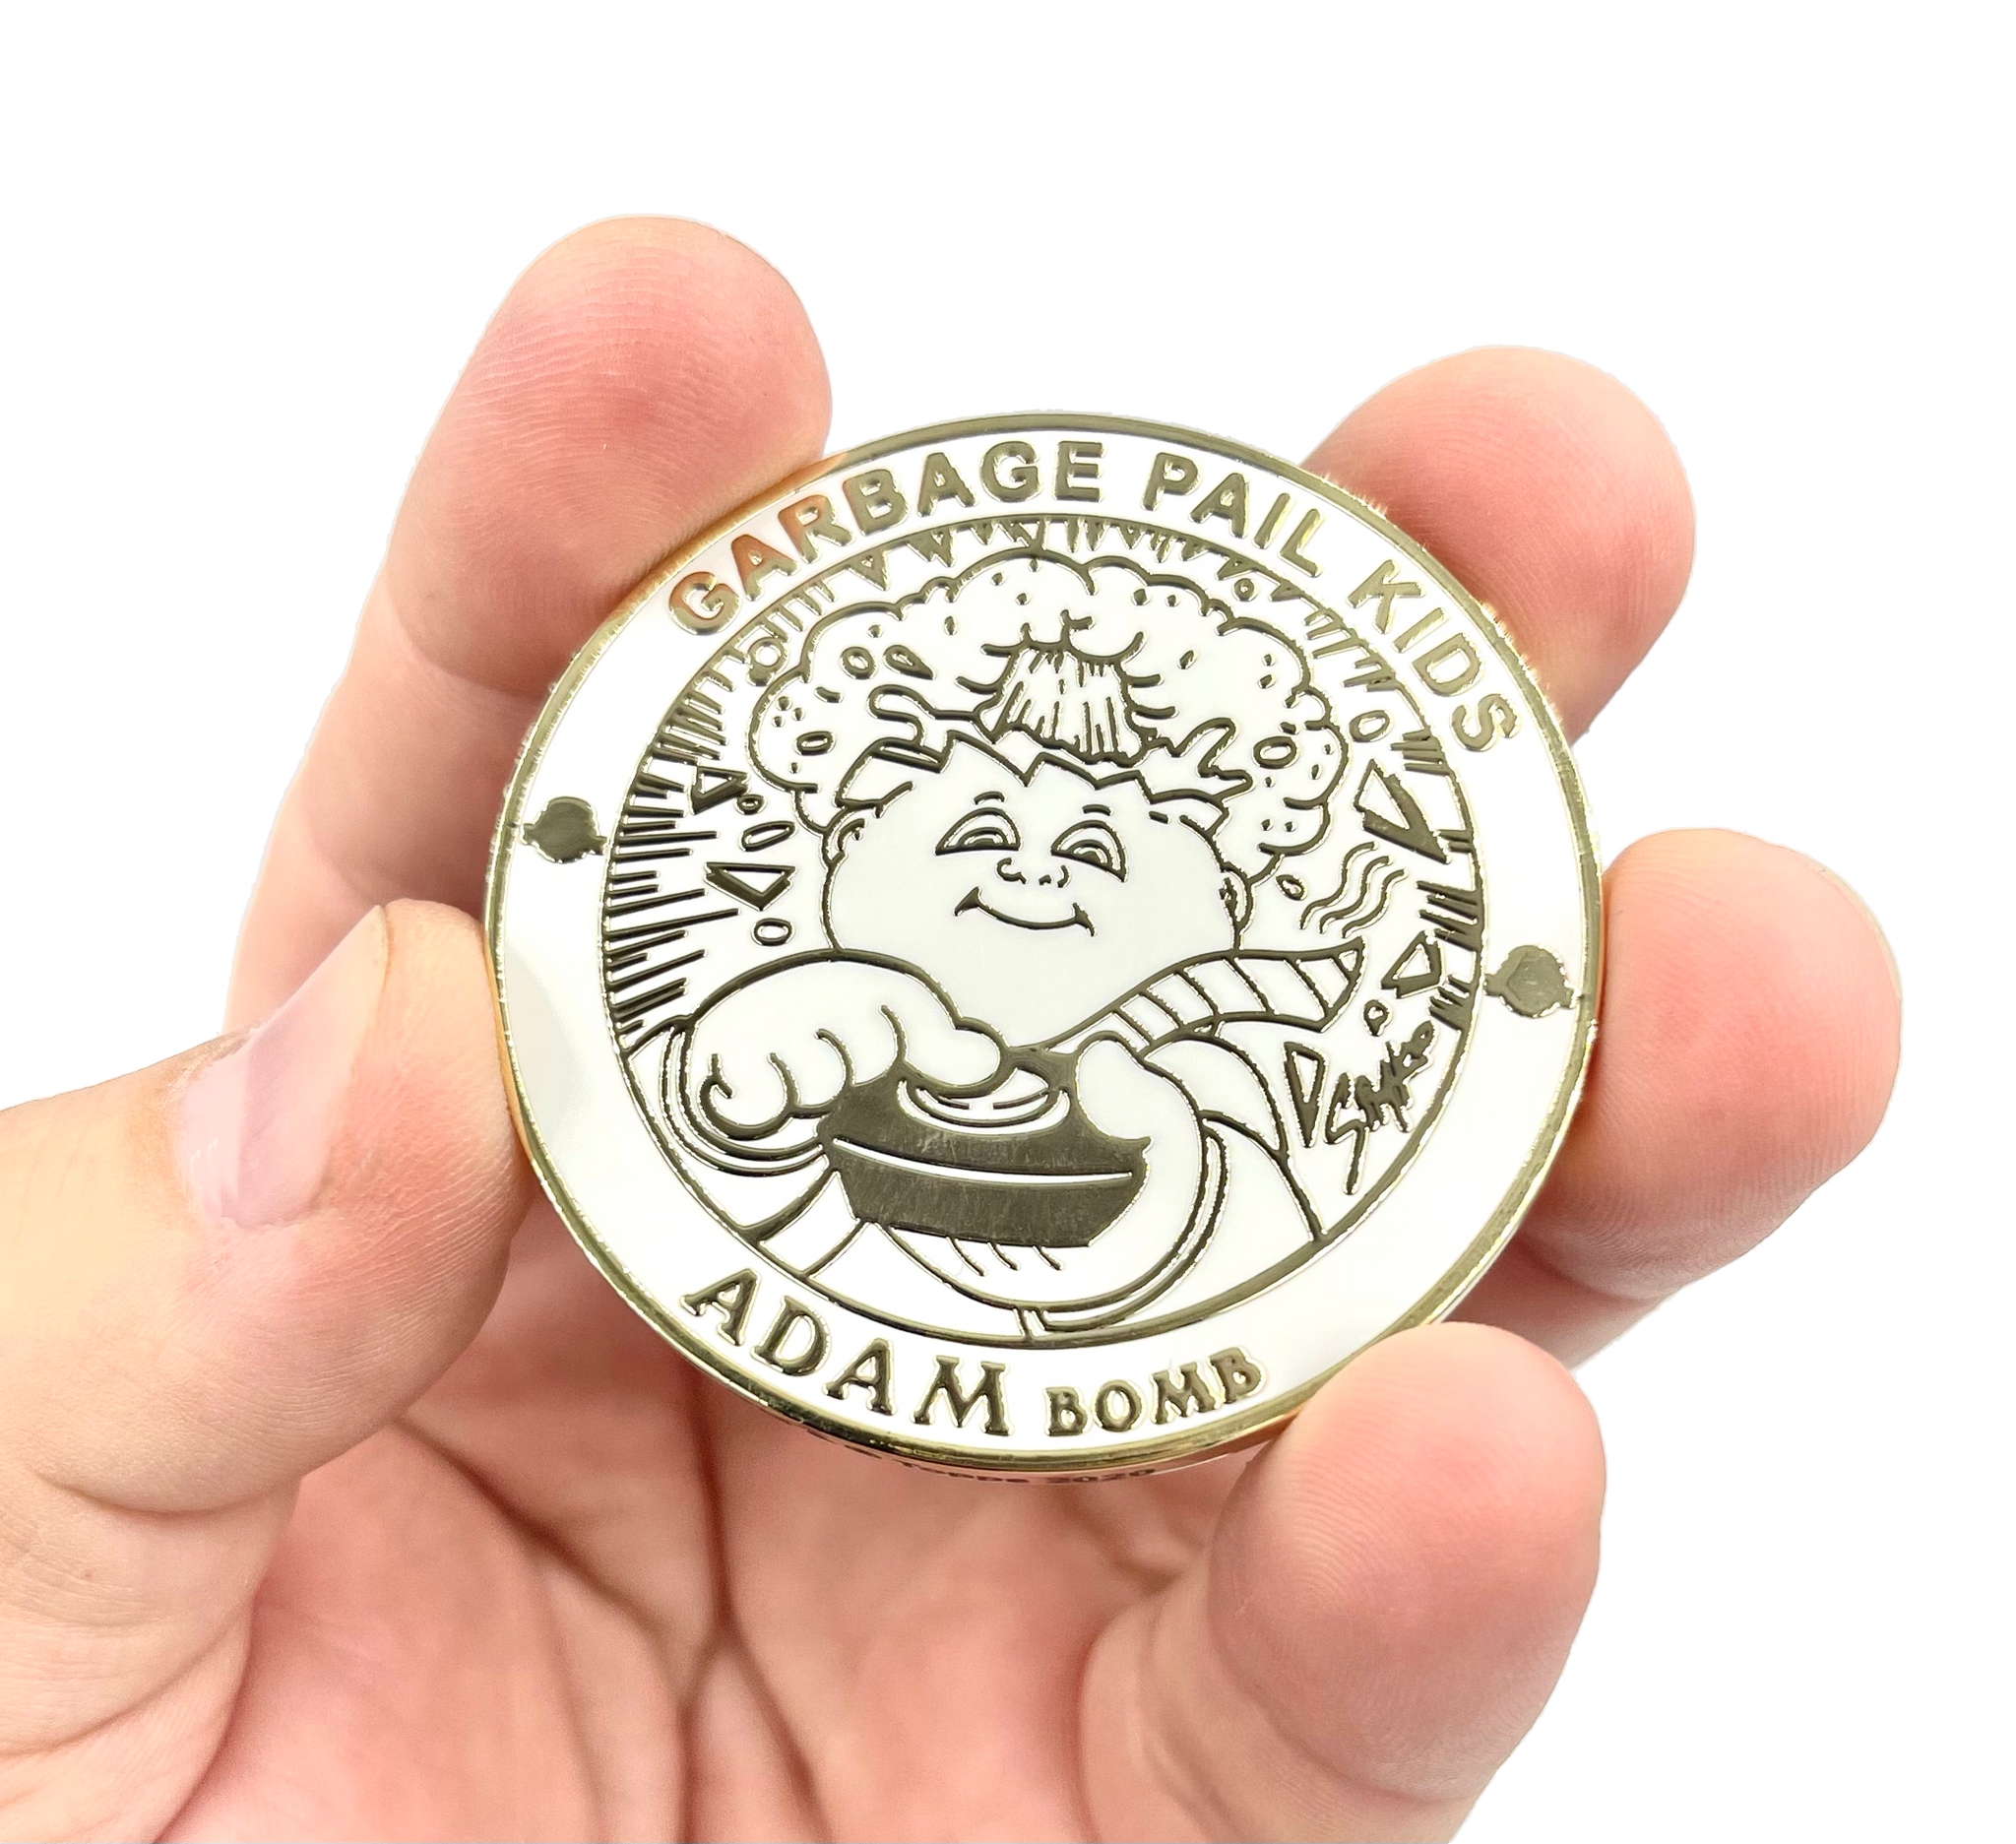 ADAM BOMB Challenge Coin Officially Licensed GPK by Topps Artist SIMKO artist collab collection Garbage Pail Kids